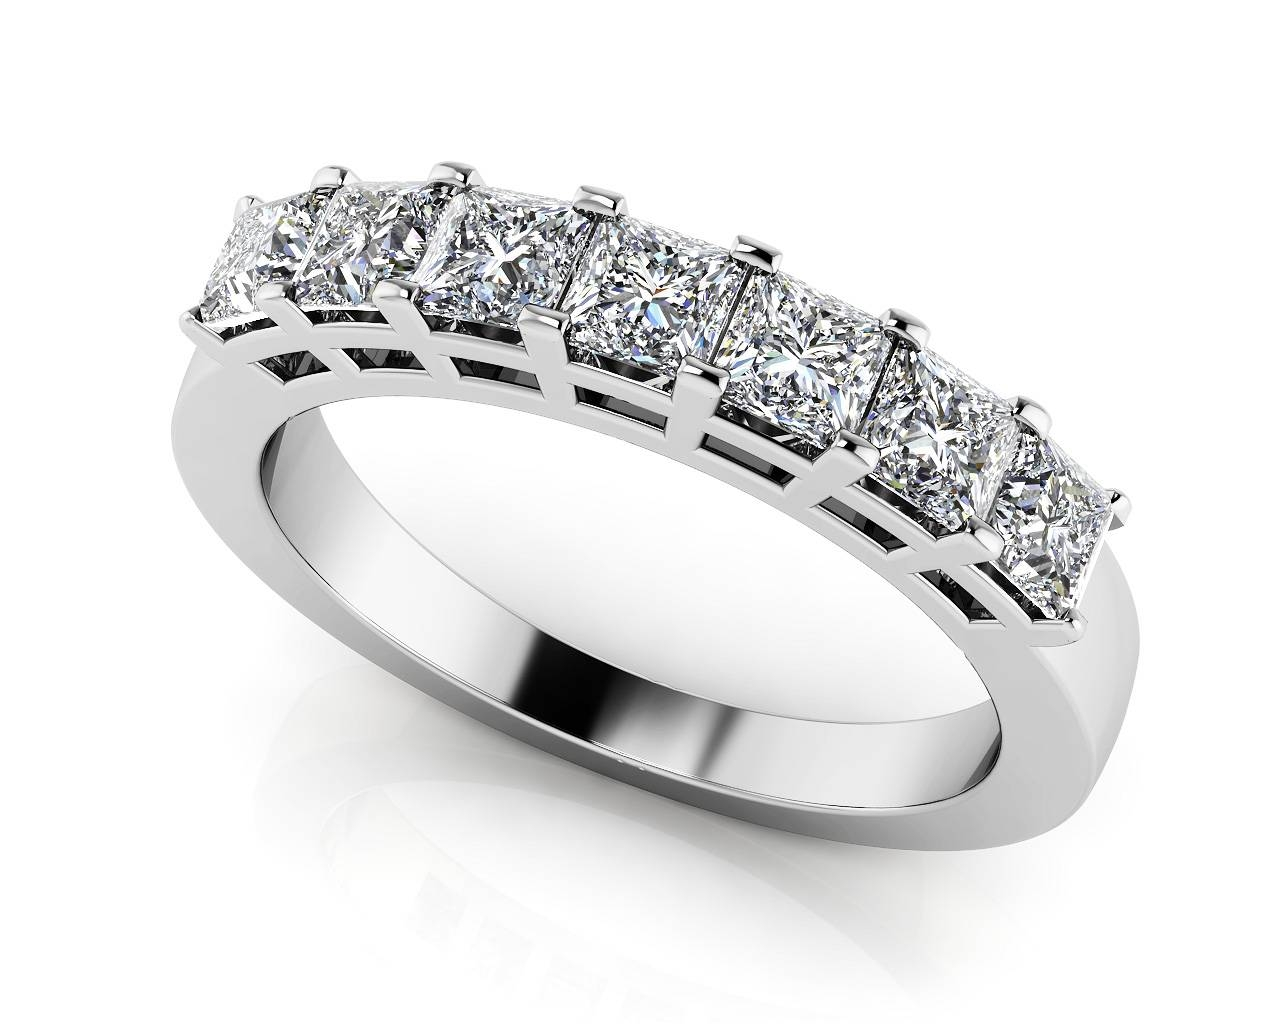 Design Your Own Diamond Anniversary Ring & Eternity Ring Regarding Best And Newest Anniversary Rings With Baguettes (Gallery 16 of 25)